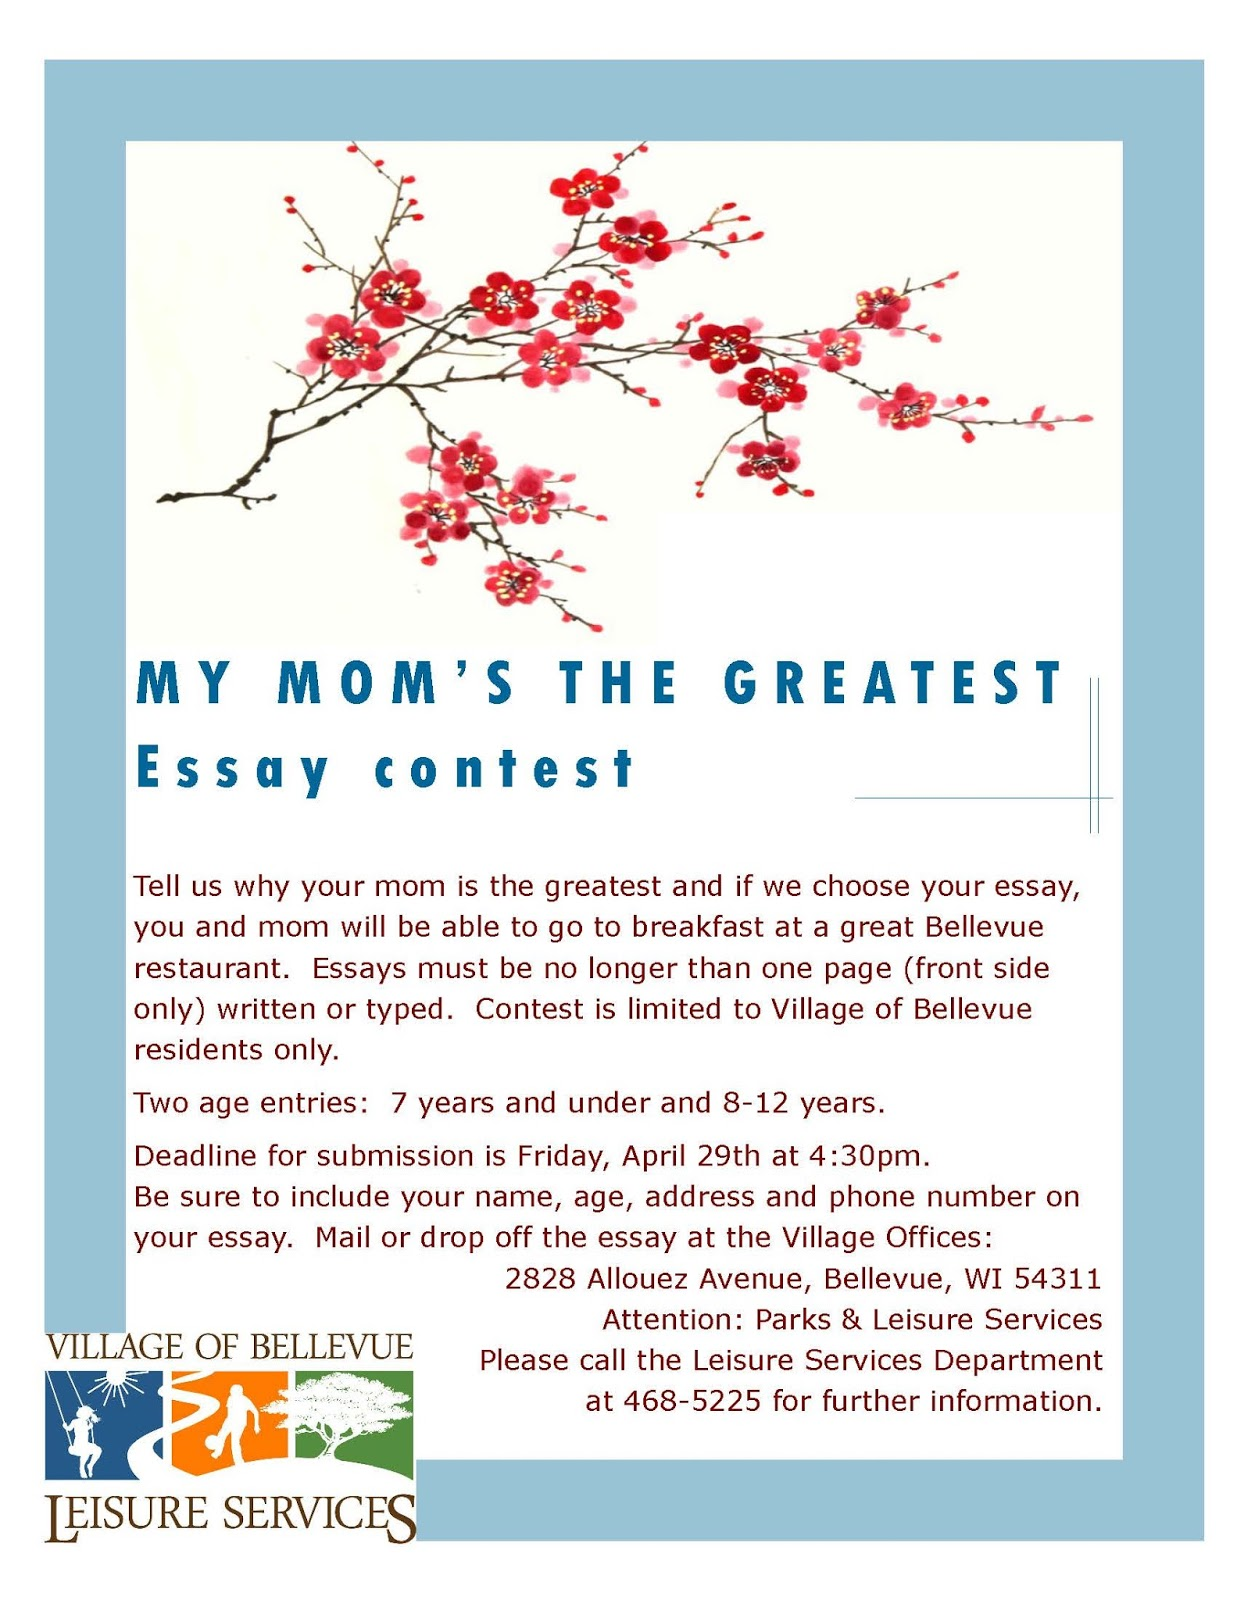 Writing Essay Papers Deadline For Submission Friday April Th At  Pm Corruption Essay In English also Essay Science Village Of Bellevue My Moms The Greatest Essay Contest What Is The Thesis Of A Research Essay